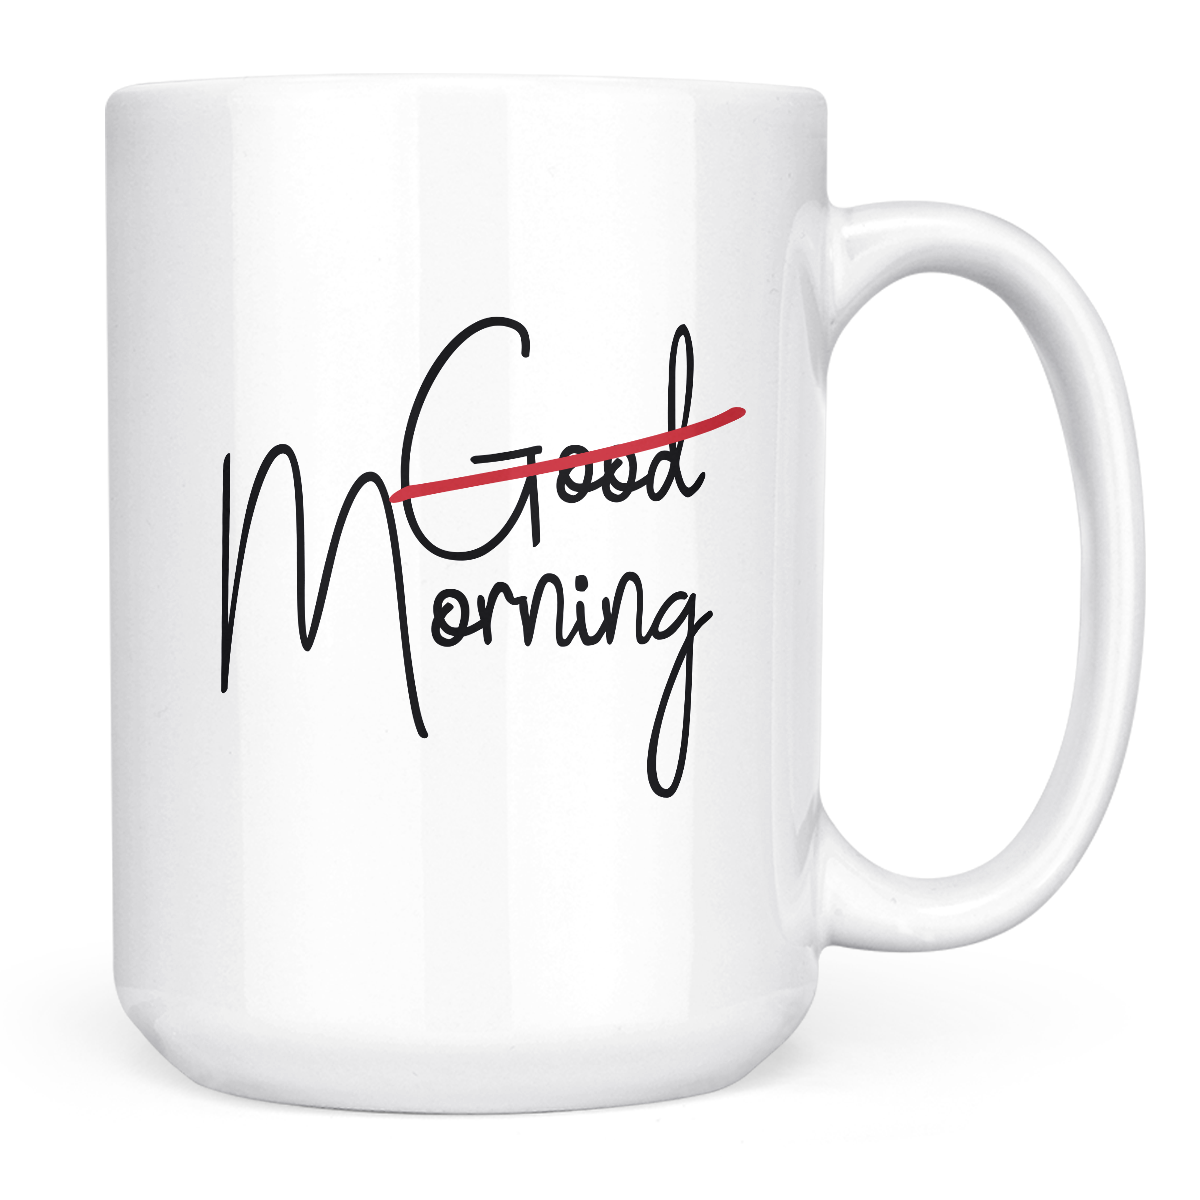 Primary image for Morning Mug Good morning White ceramic 15oz Novelty coffee Mug